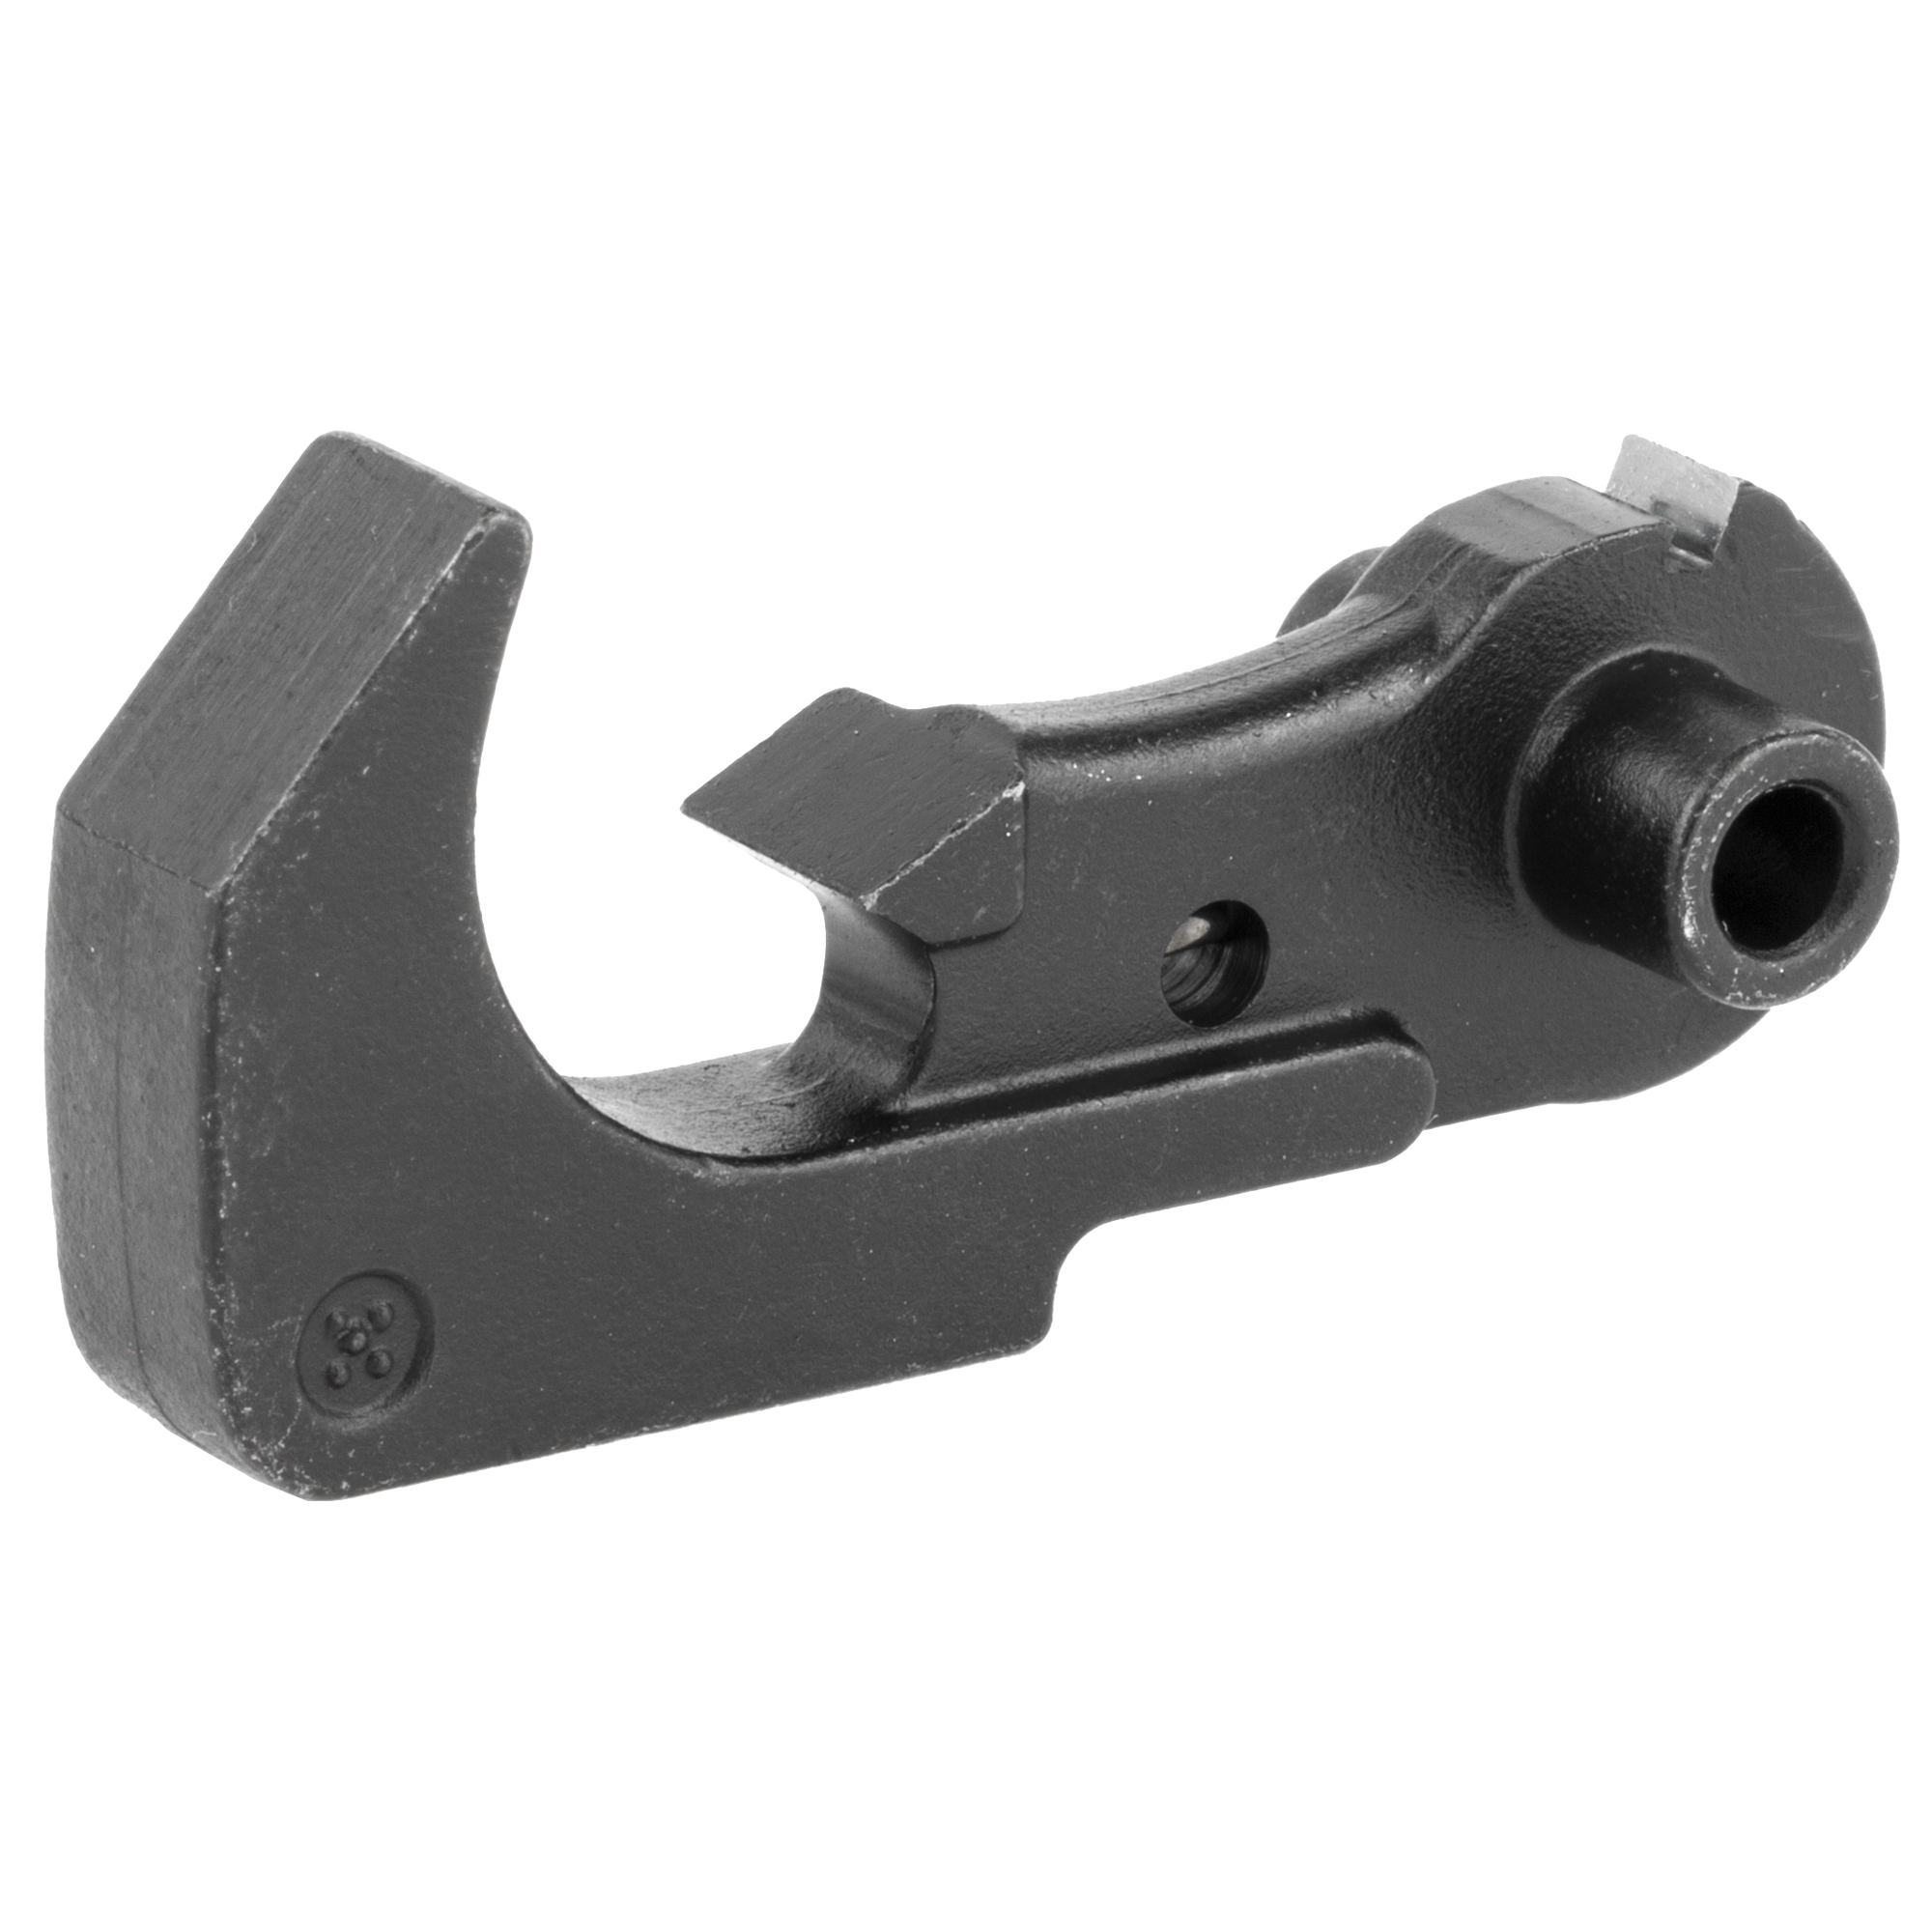 The LBE AR-15 hammer is made in the USA from 8620 steel.